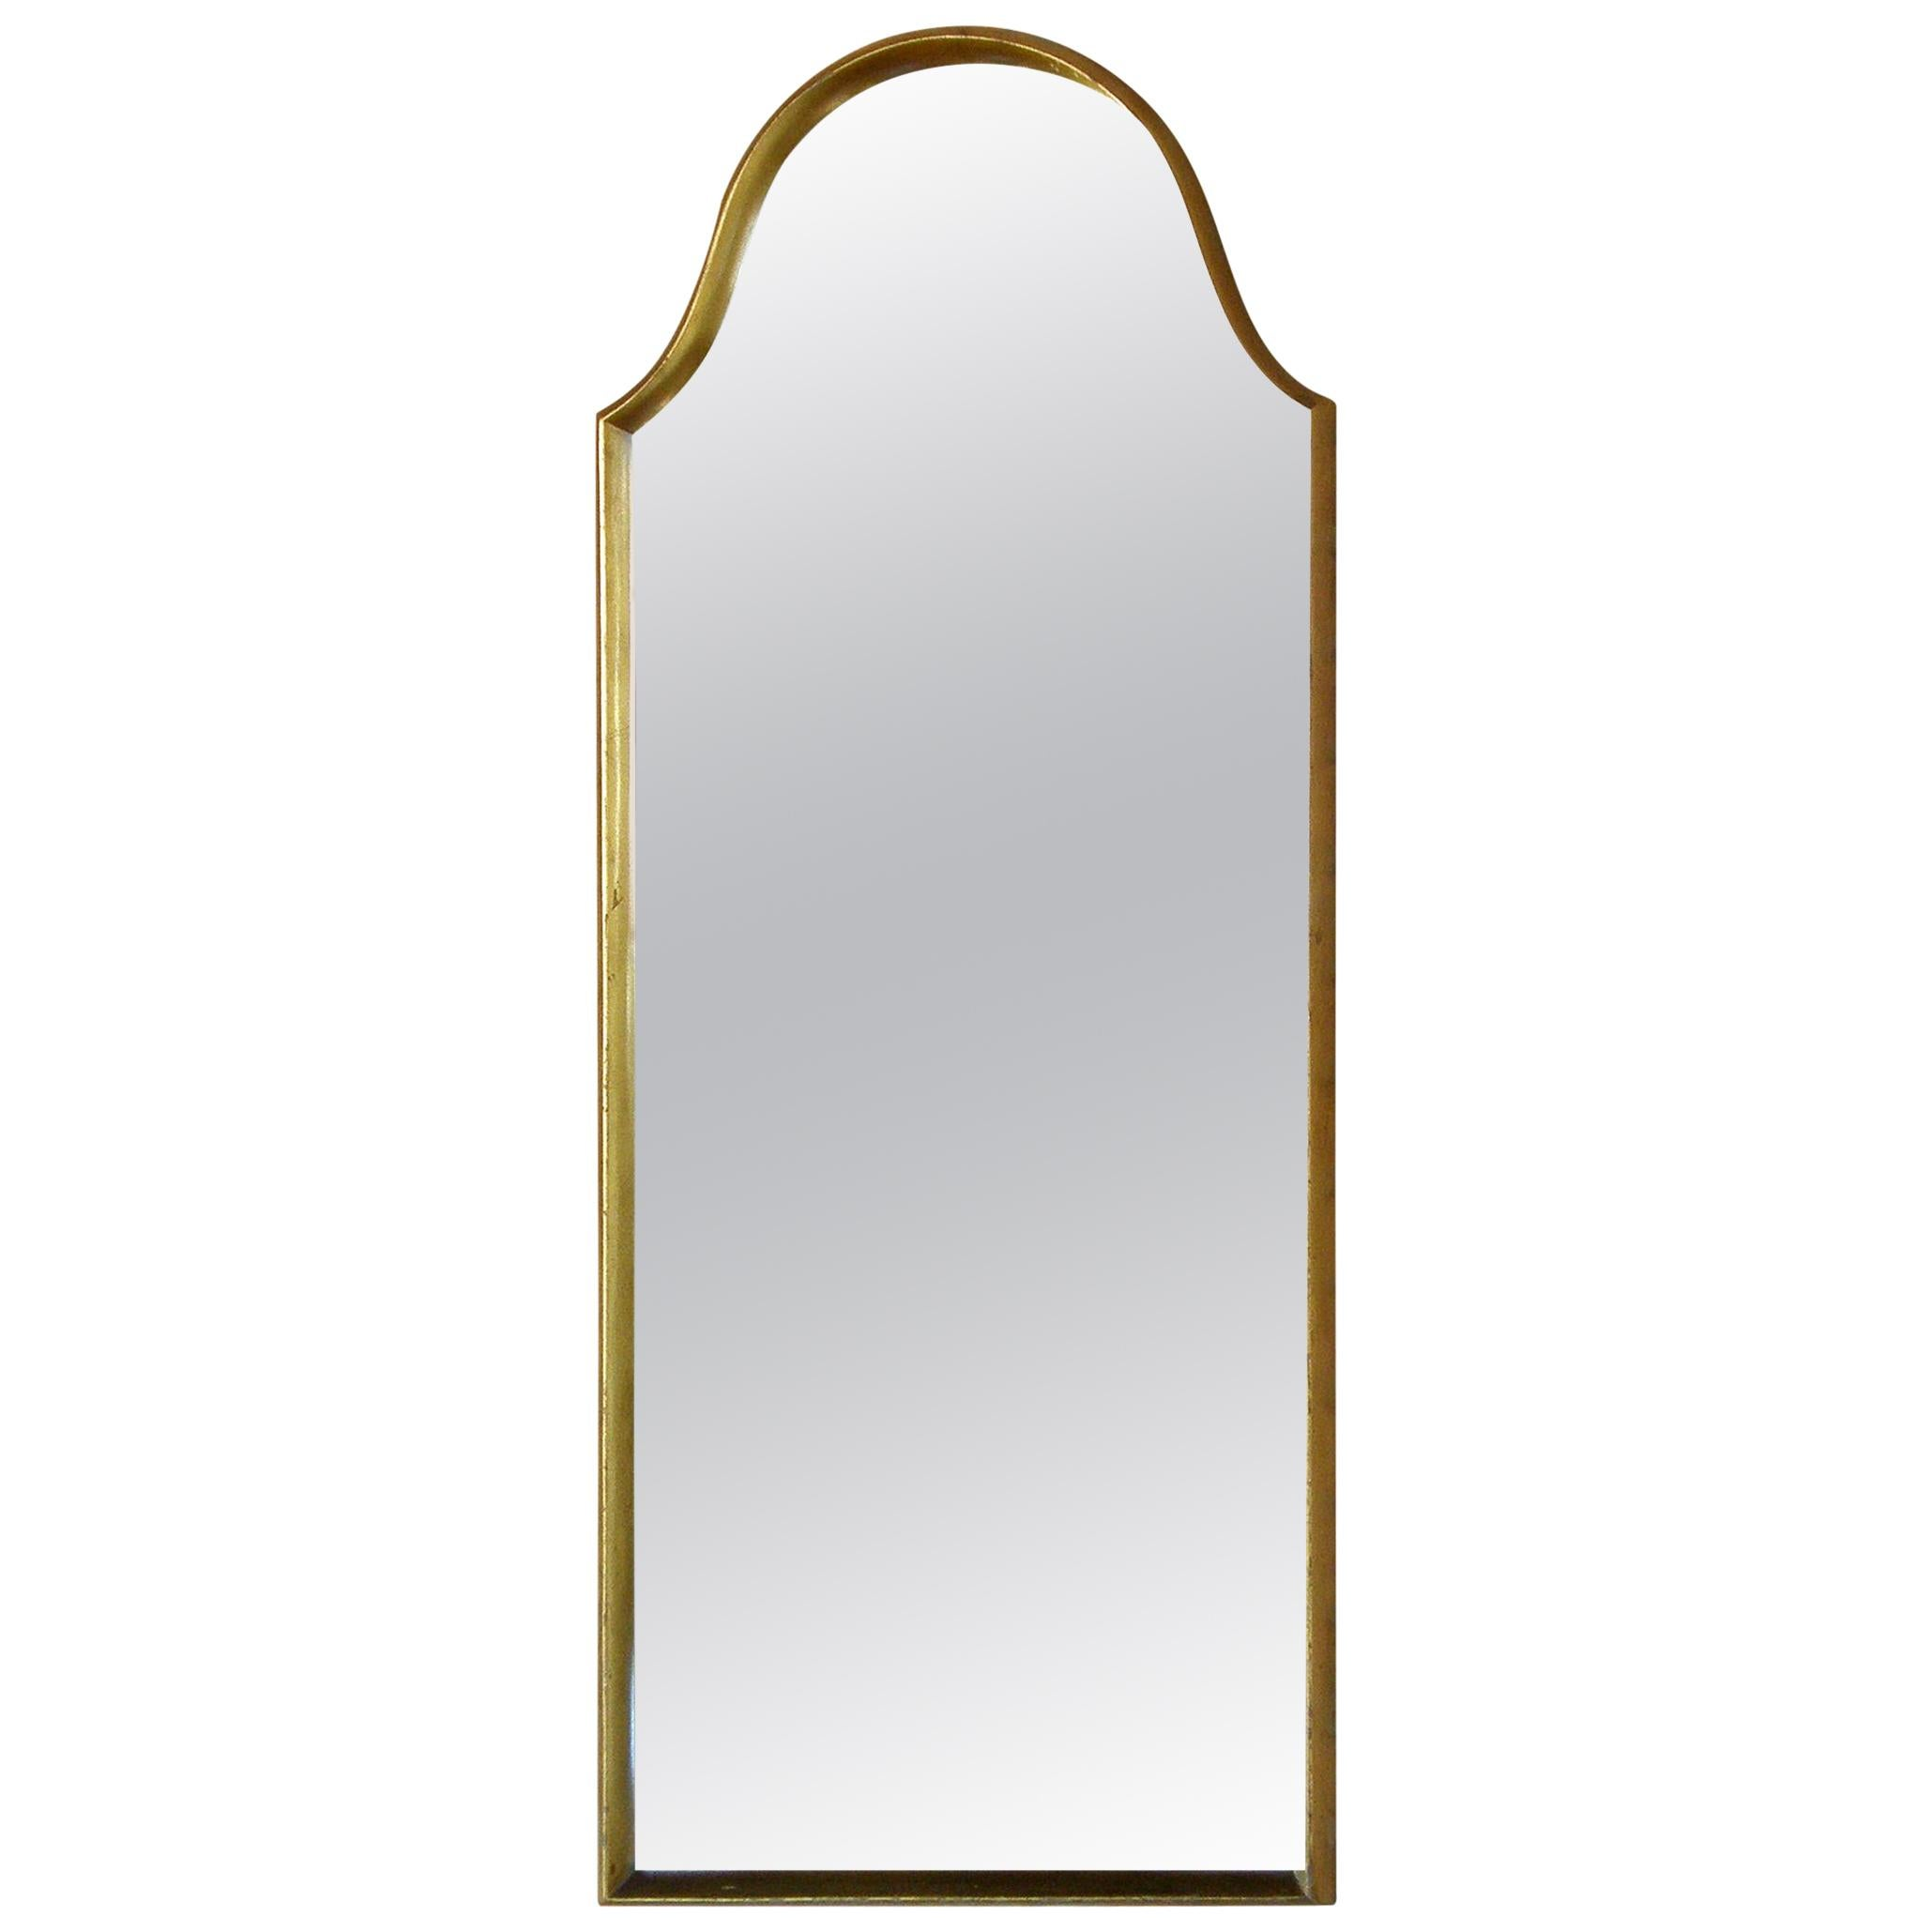 Rectangular Giltwood Wall Mirror with Arched Top